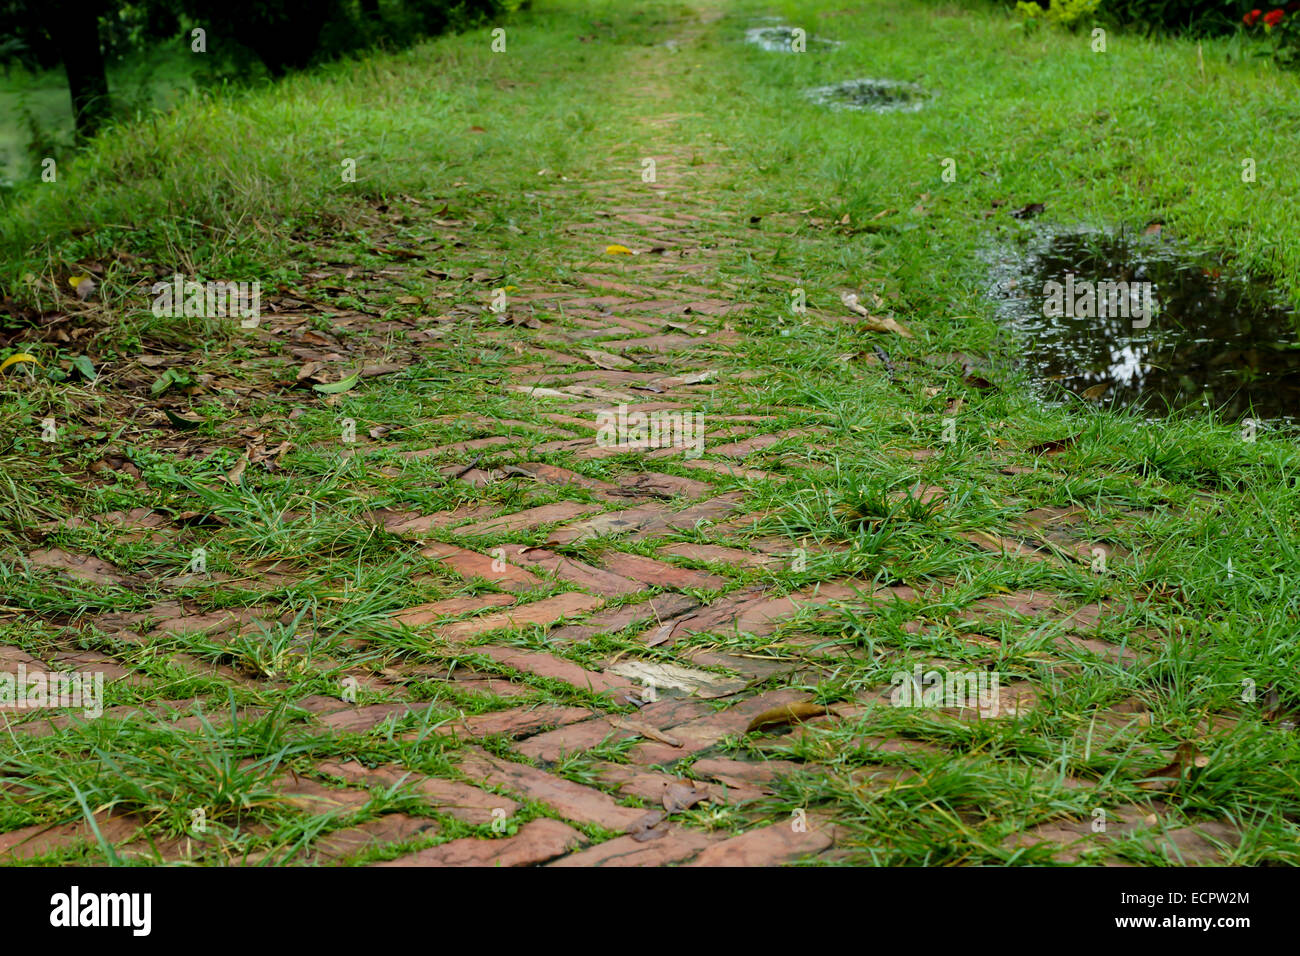 brick path covered in grass - Stock Image